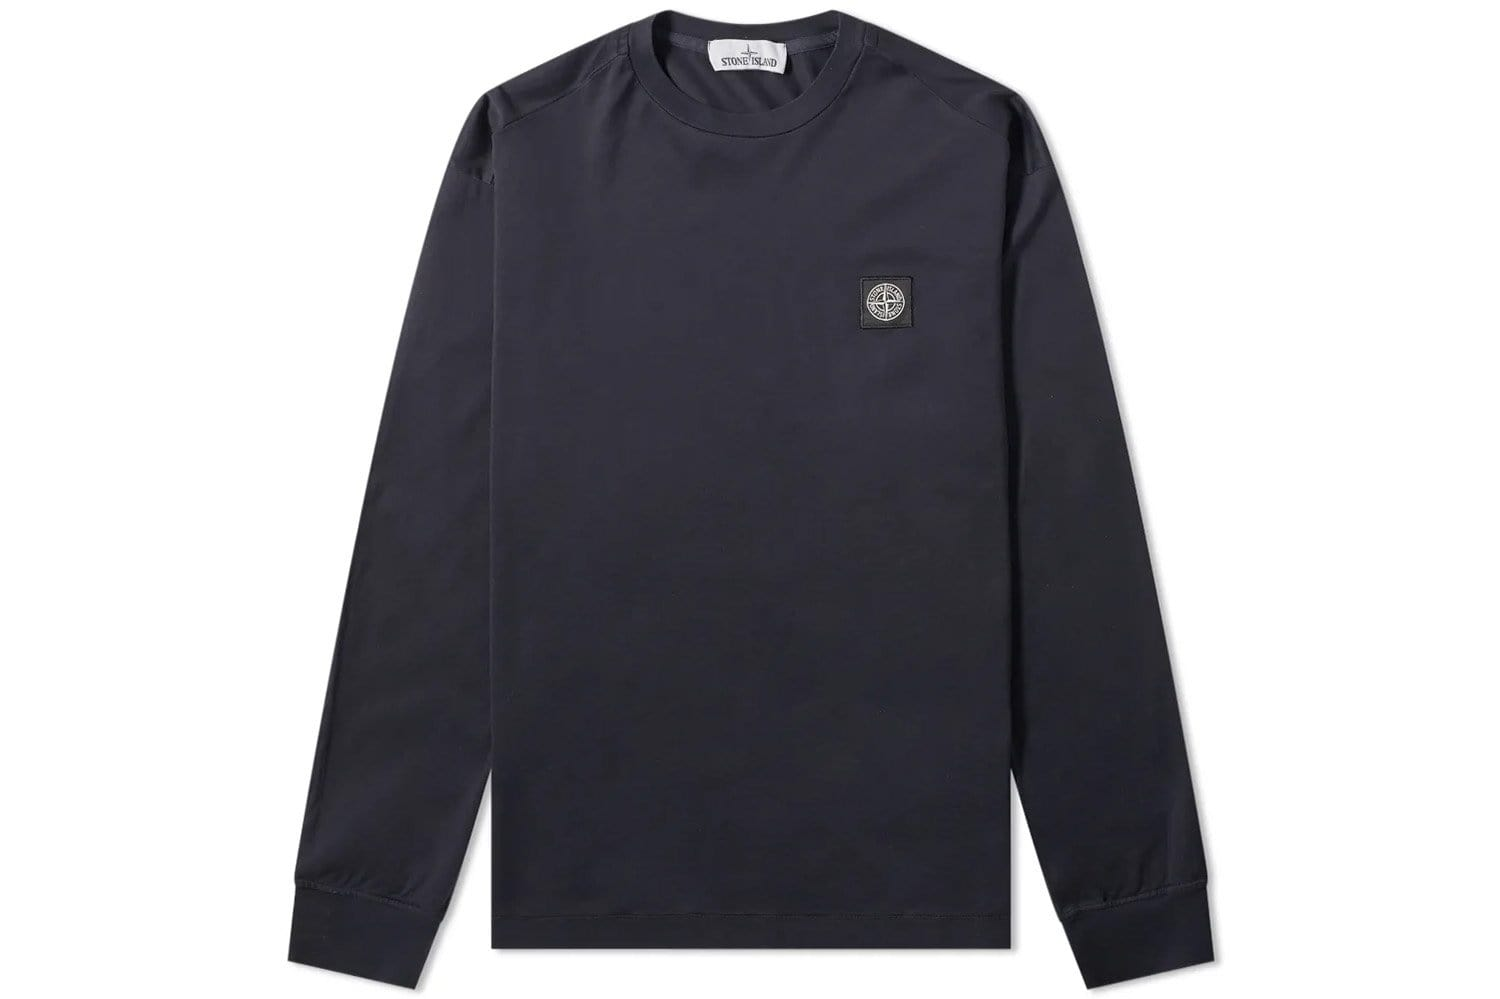 SMALL PATCH LONG SLEEVE TEE - MO701522713 MENS SOFTGOODS STONE ISLAND NAVY L